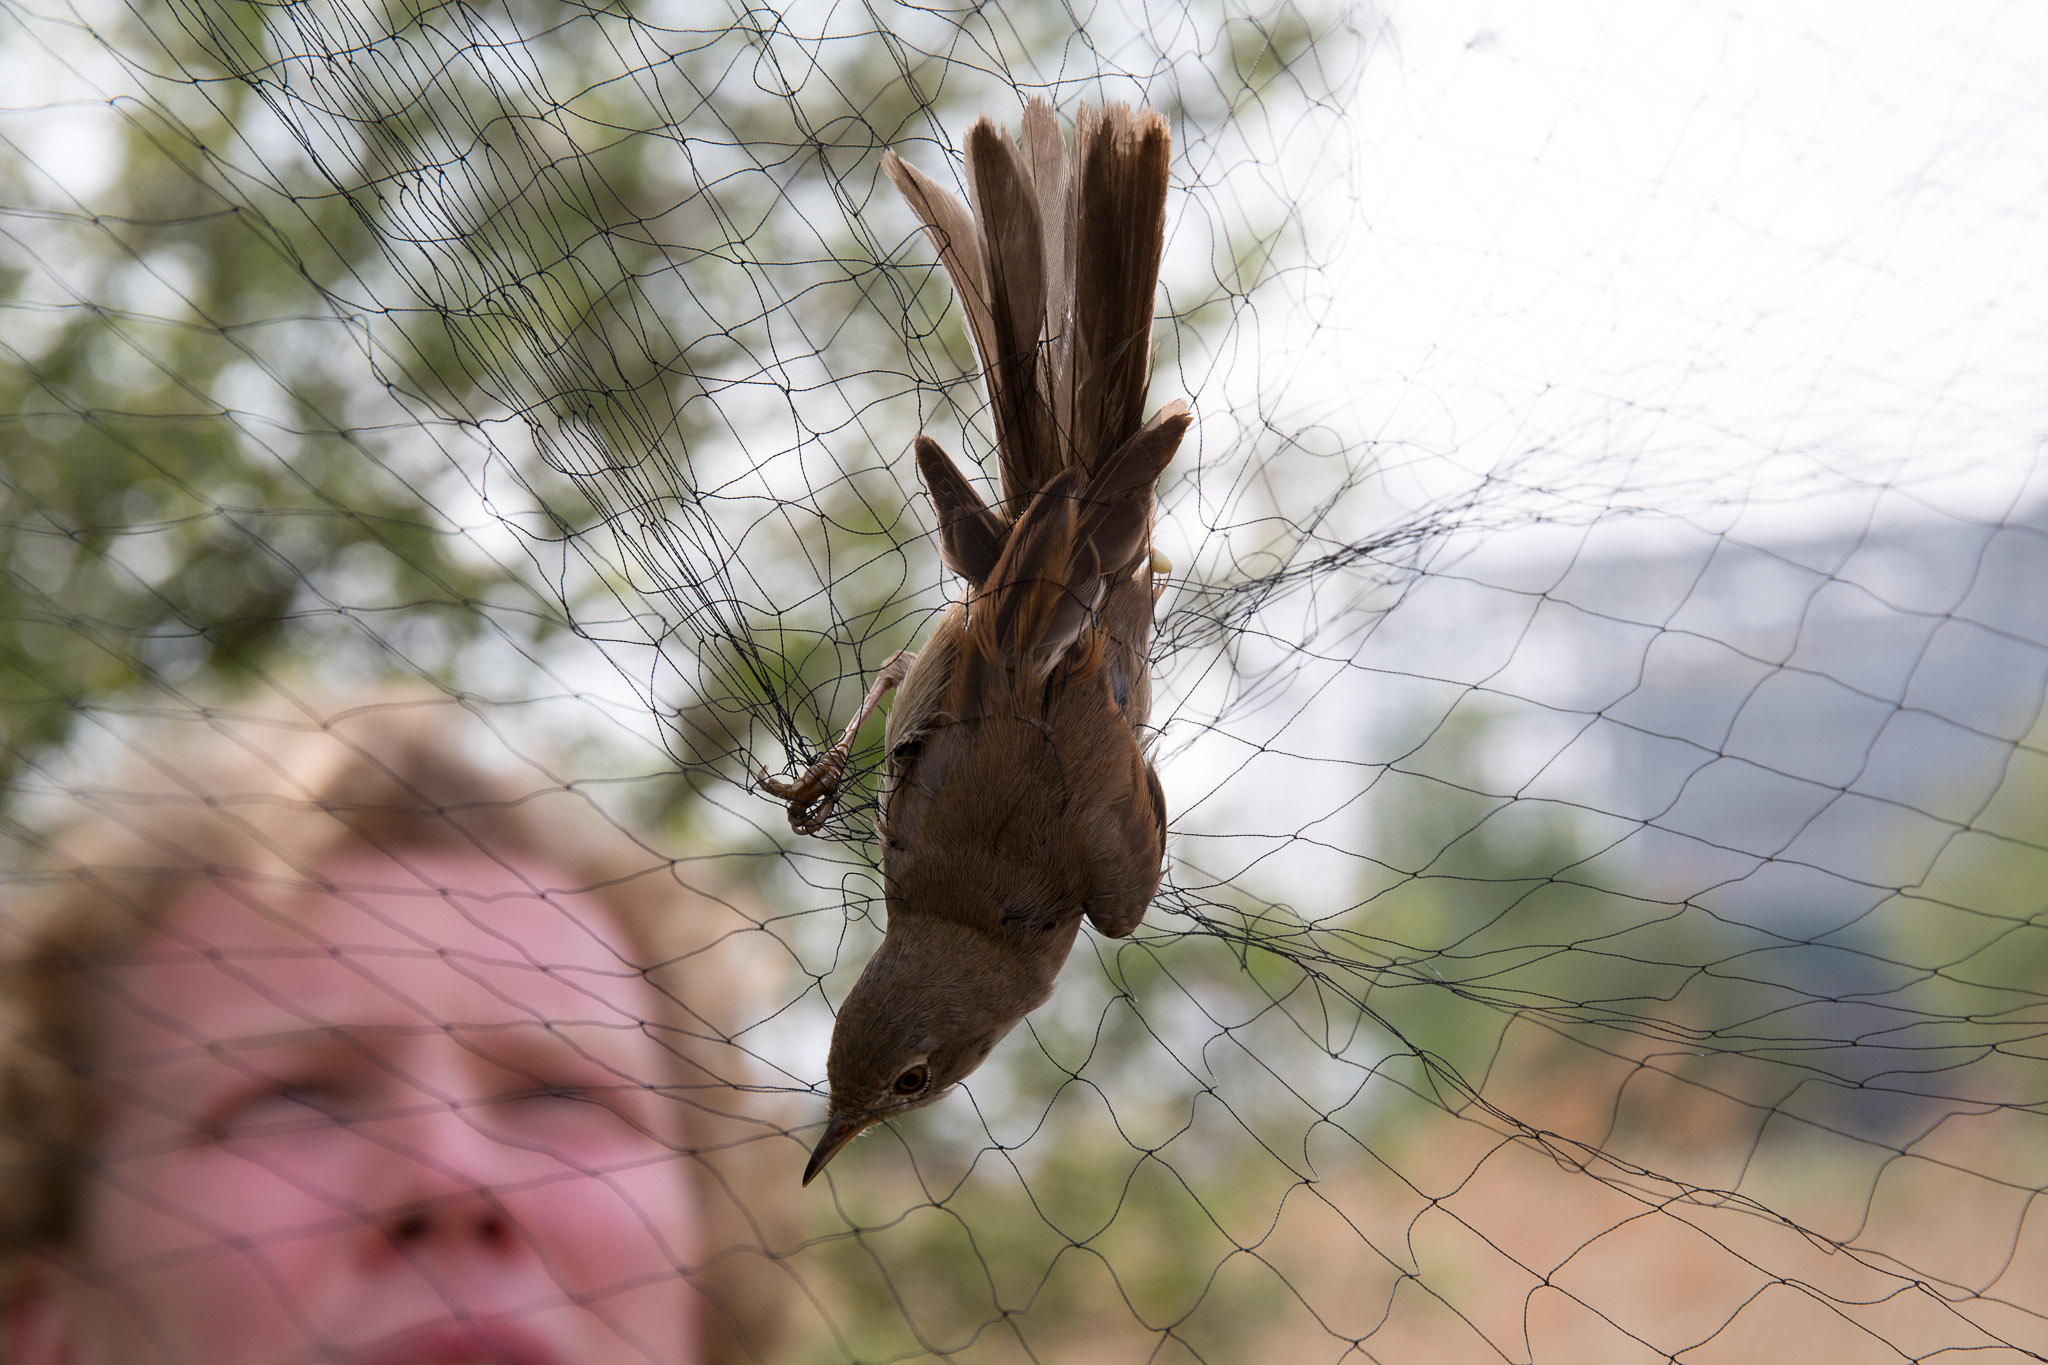 The mist nets are made of a soft fine material enabling the humane and safe capture of  live birds.